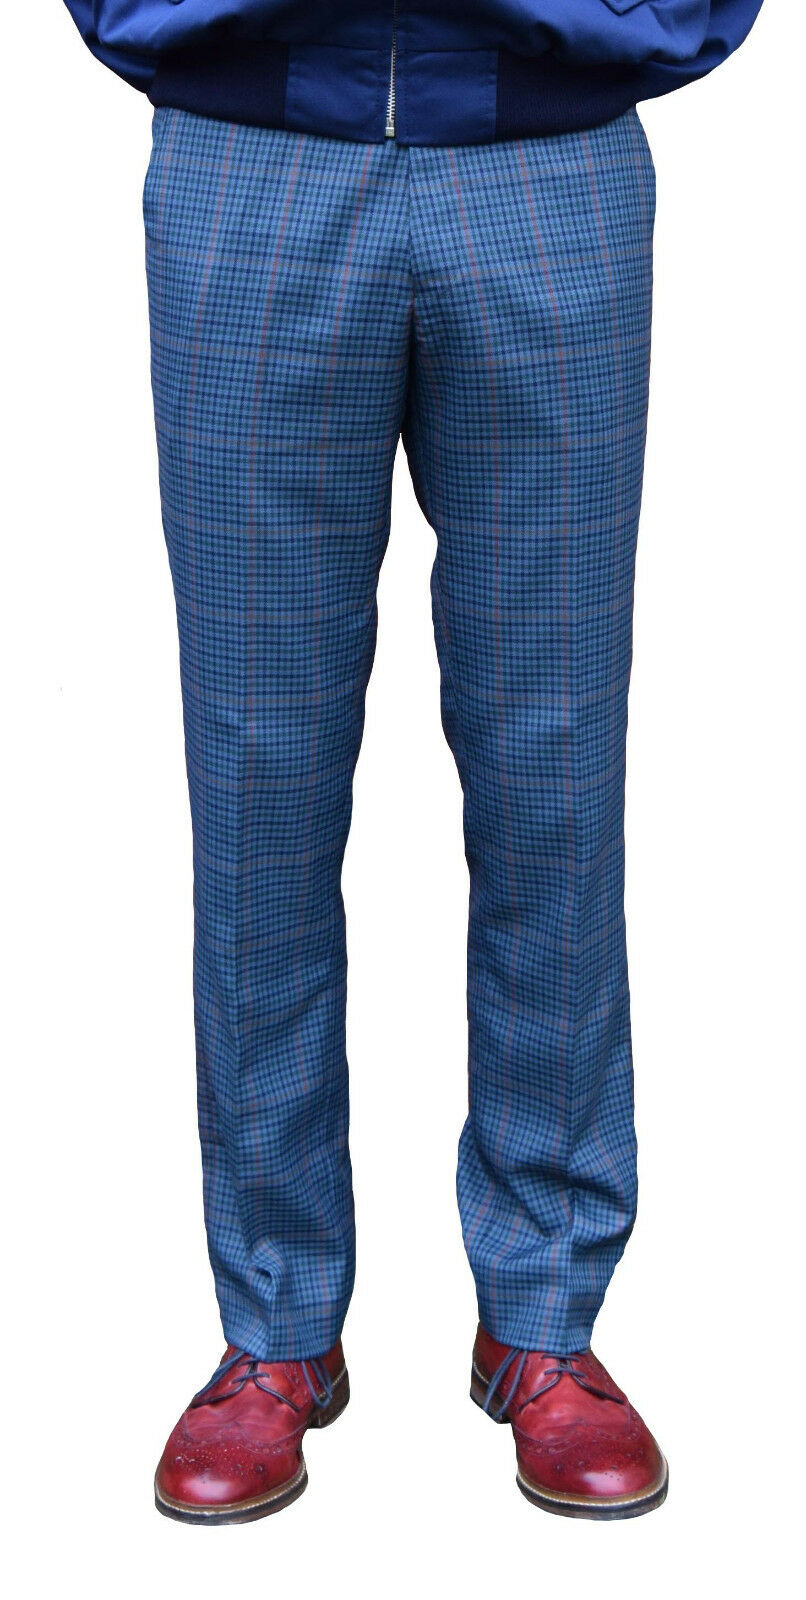 blueE TWEED STA PRESS TROUSERS-MOD RETRO SKINHEAD NORTHERN SOUL SKA RELCO SCOOTER